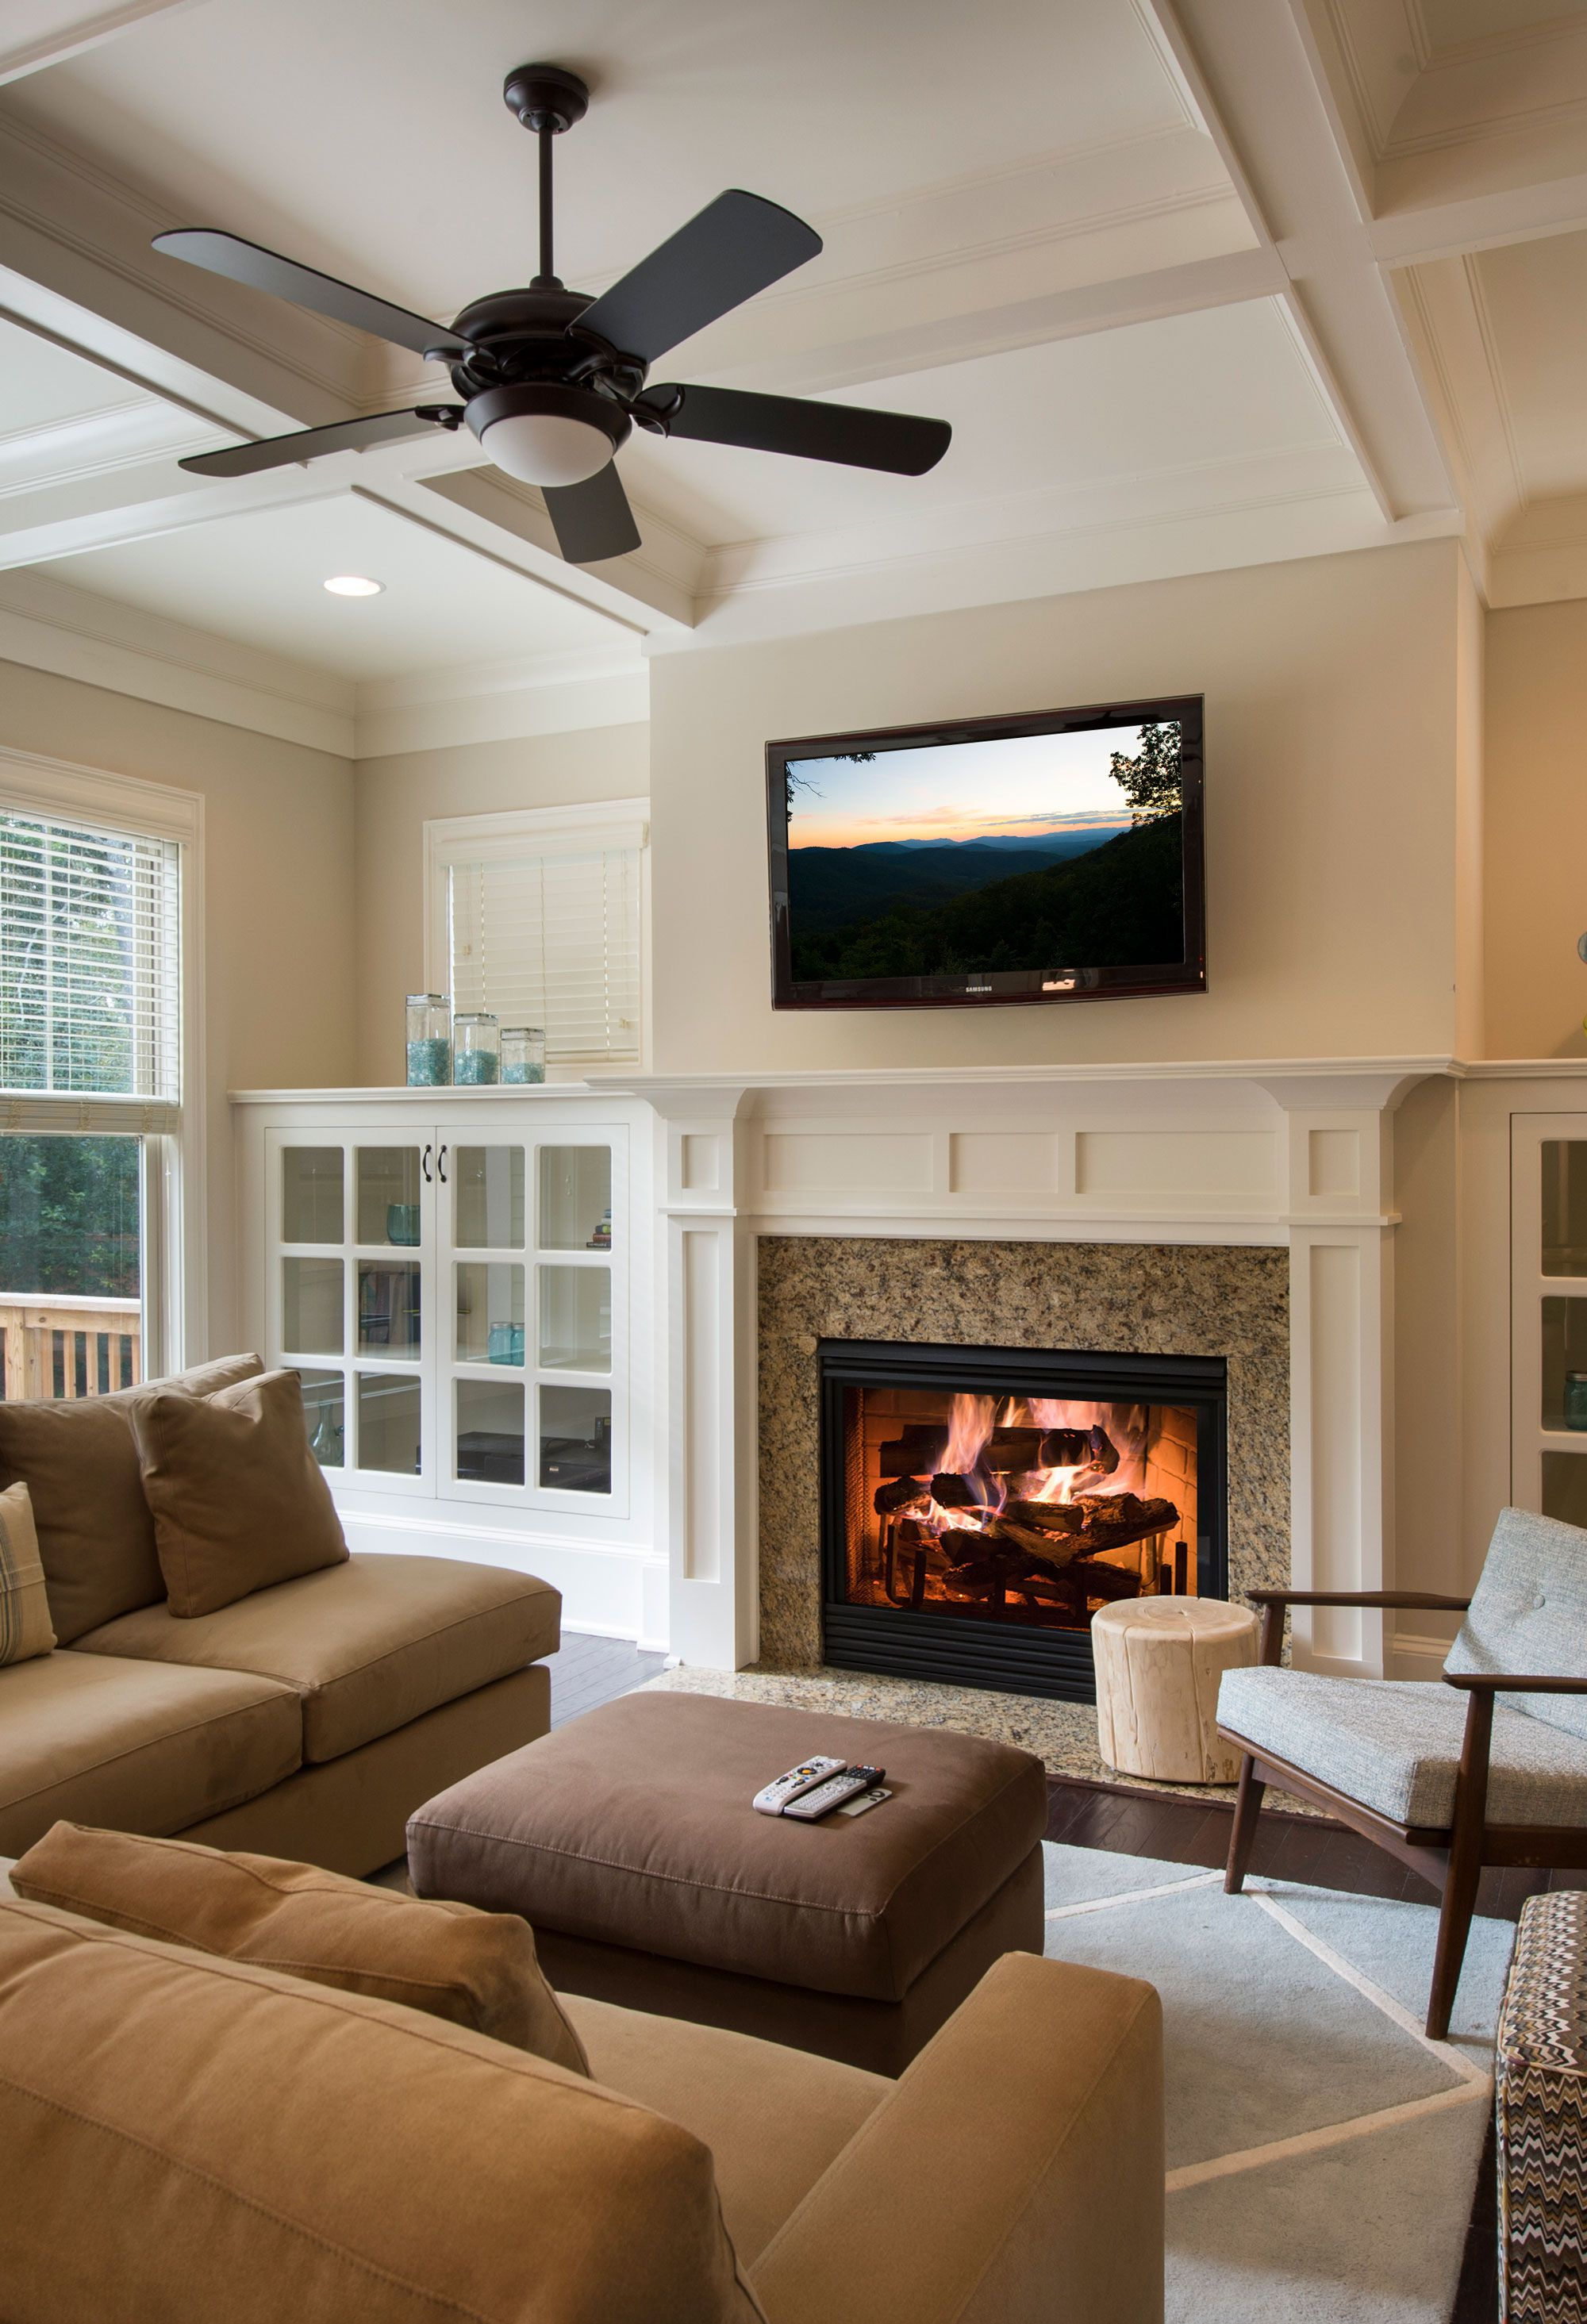 Warm Classic Living Room With Stone Fireplace And Built-in